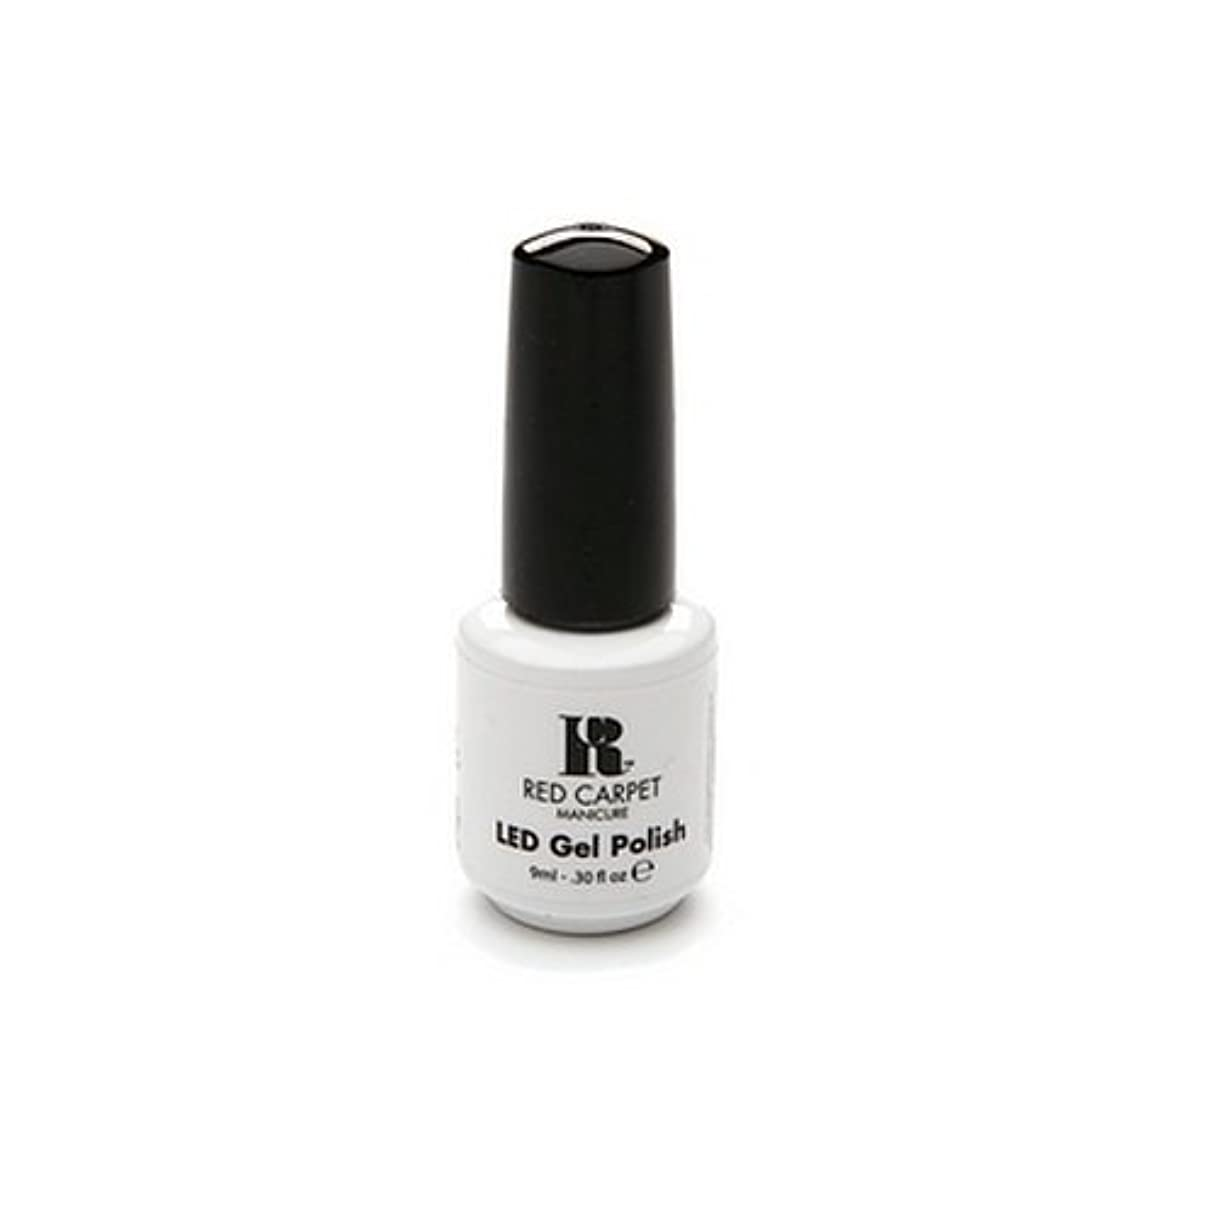 干ばつ形状乱気流Red Carpet Manicure - LED Nail Gel Polish - Iconic Beauty - 0.3oz / 9ml